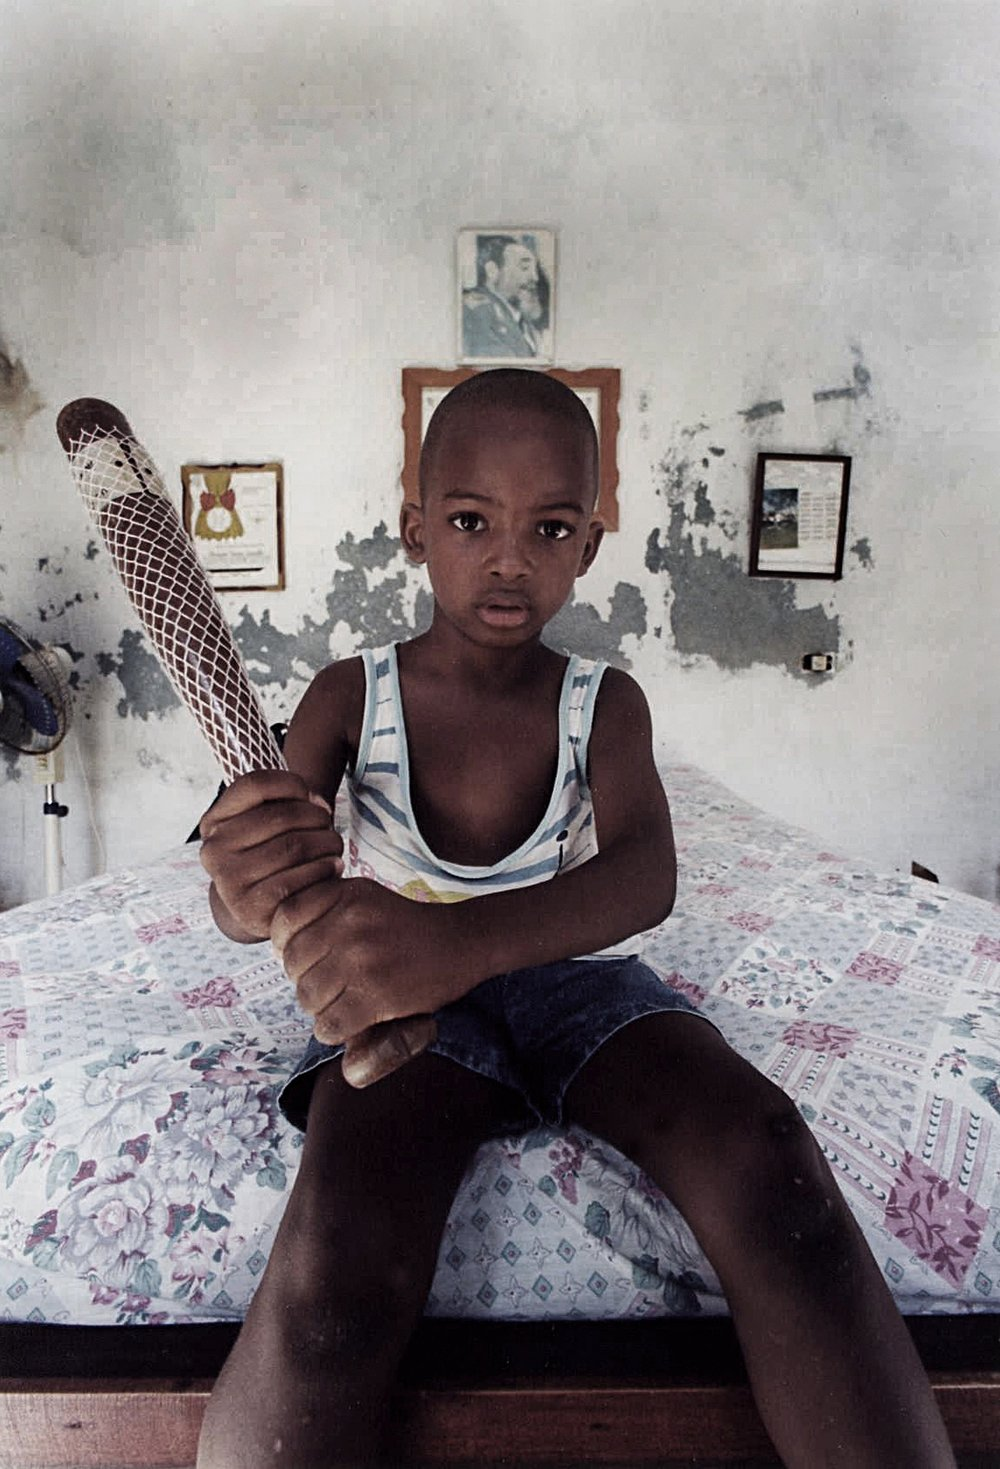 Cuba - Boy With Bat